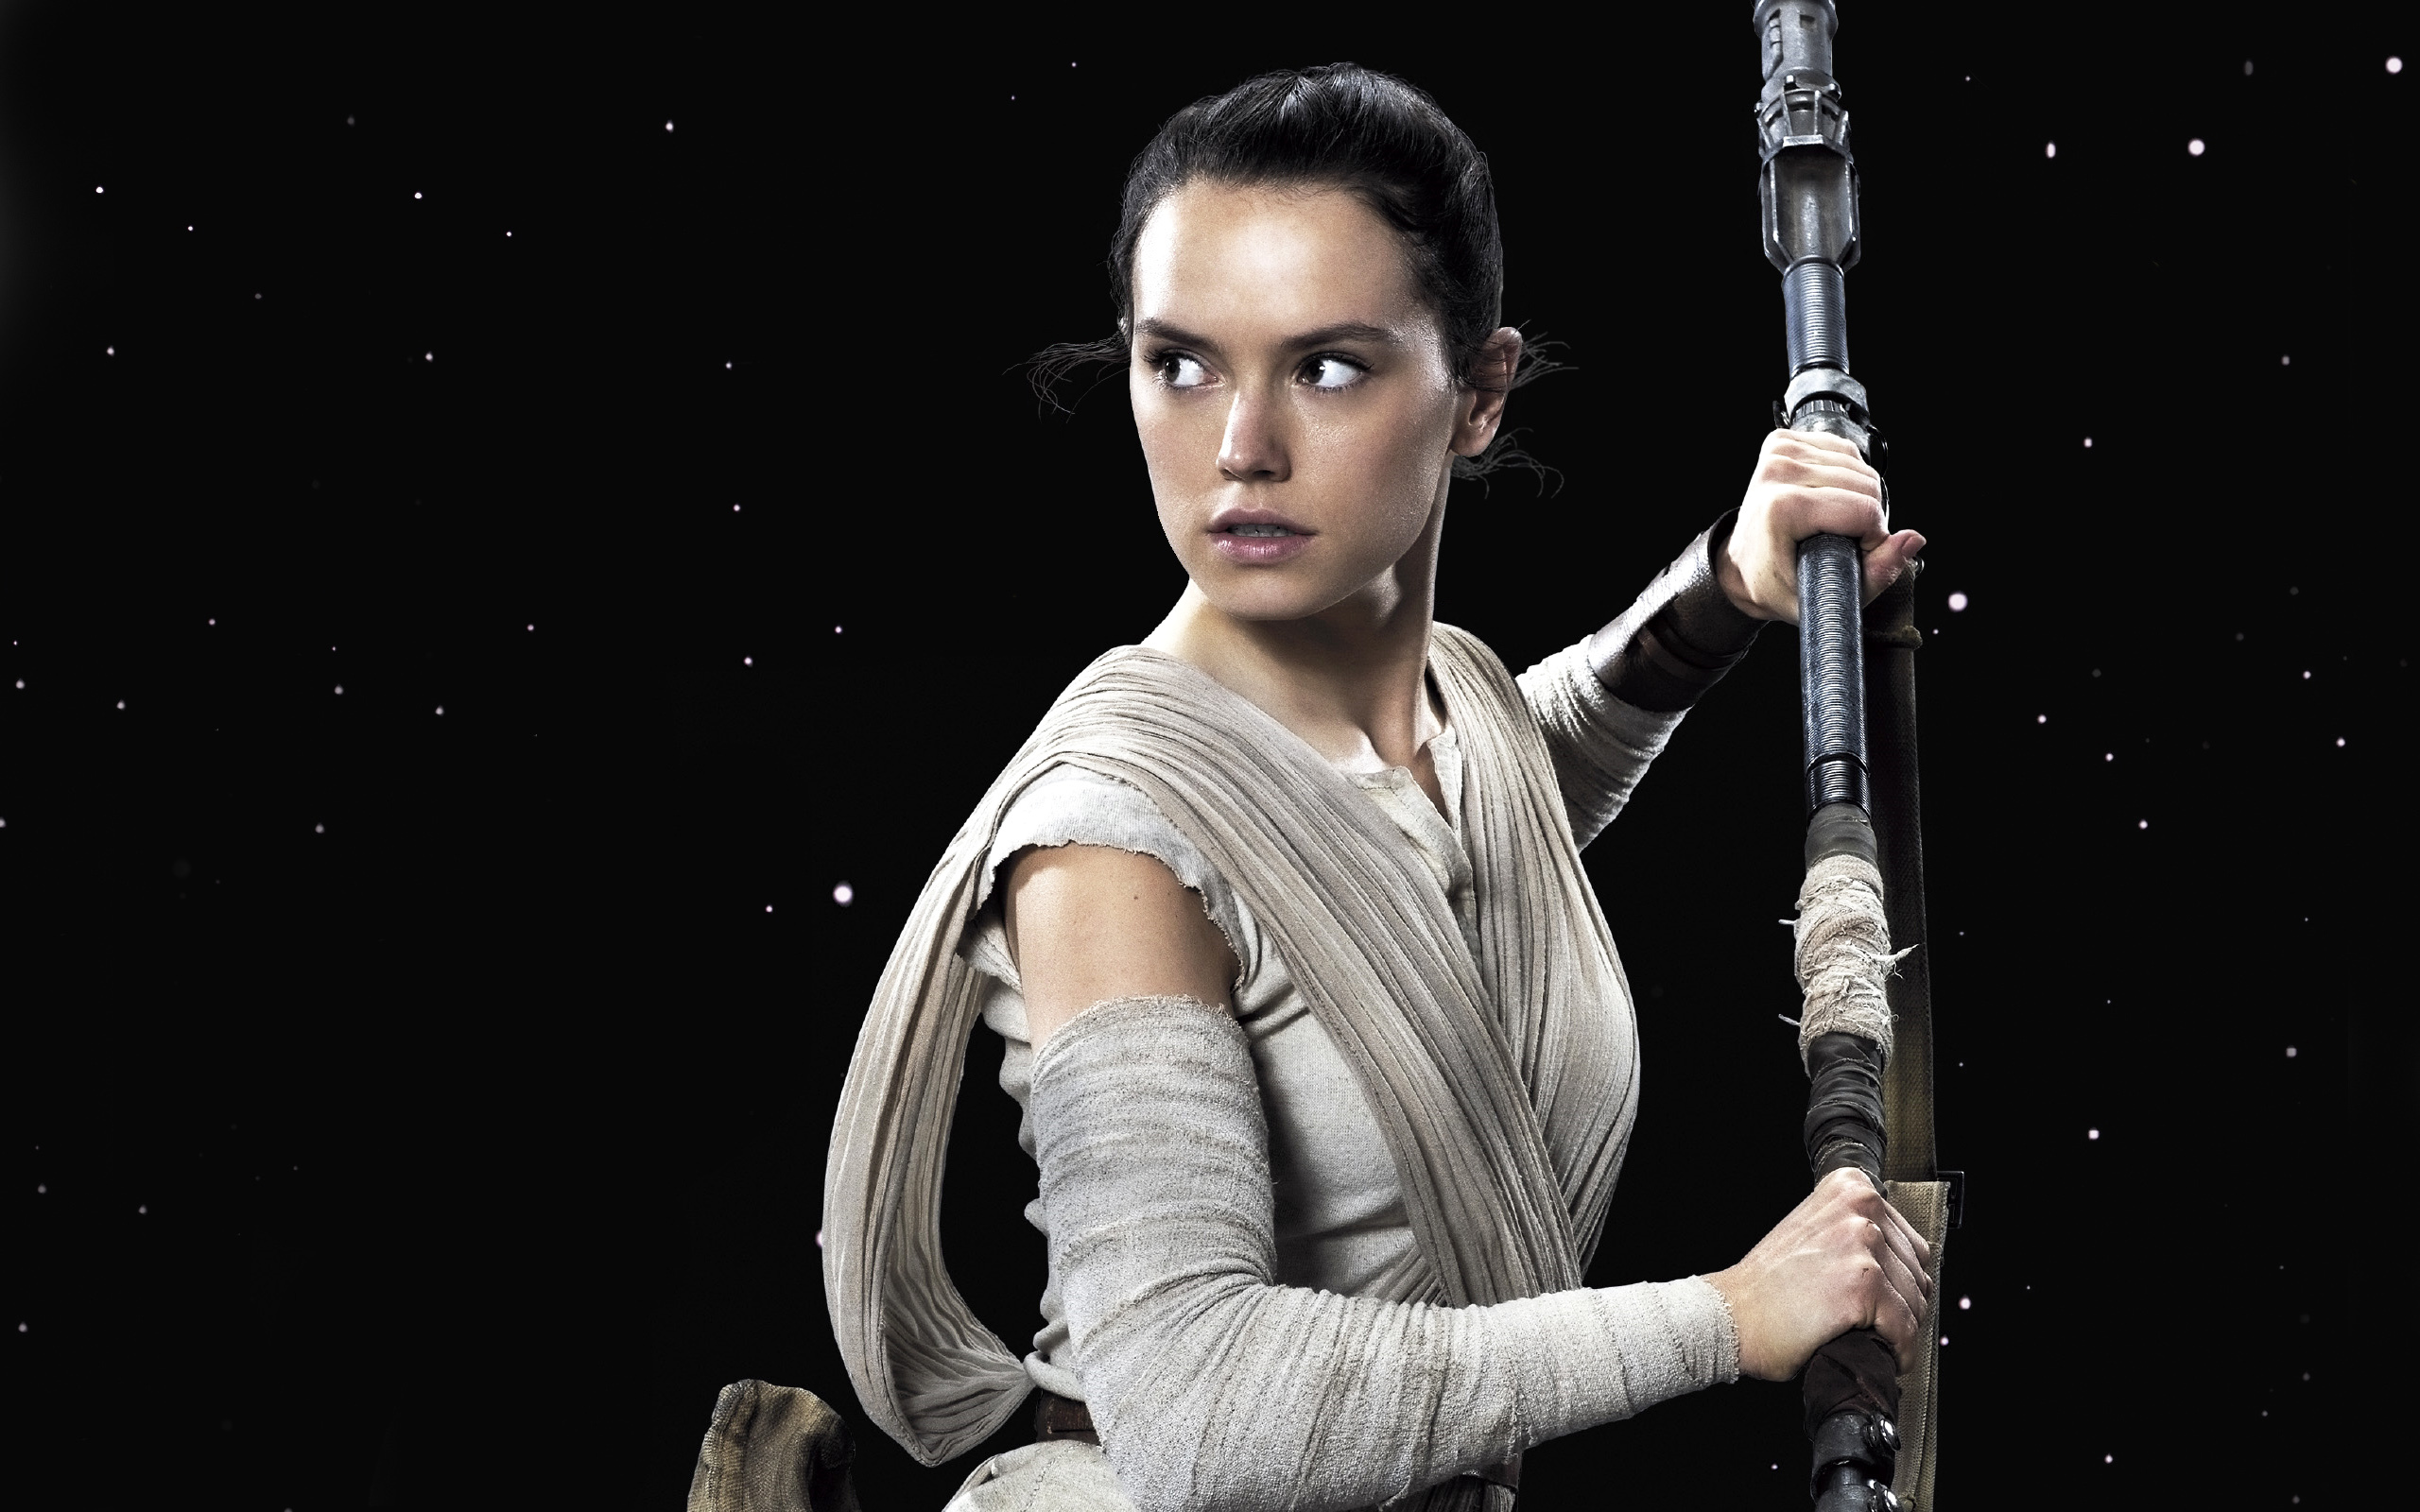 2560x1600 - Daisy Ridley Wallpapers 22